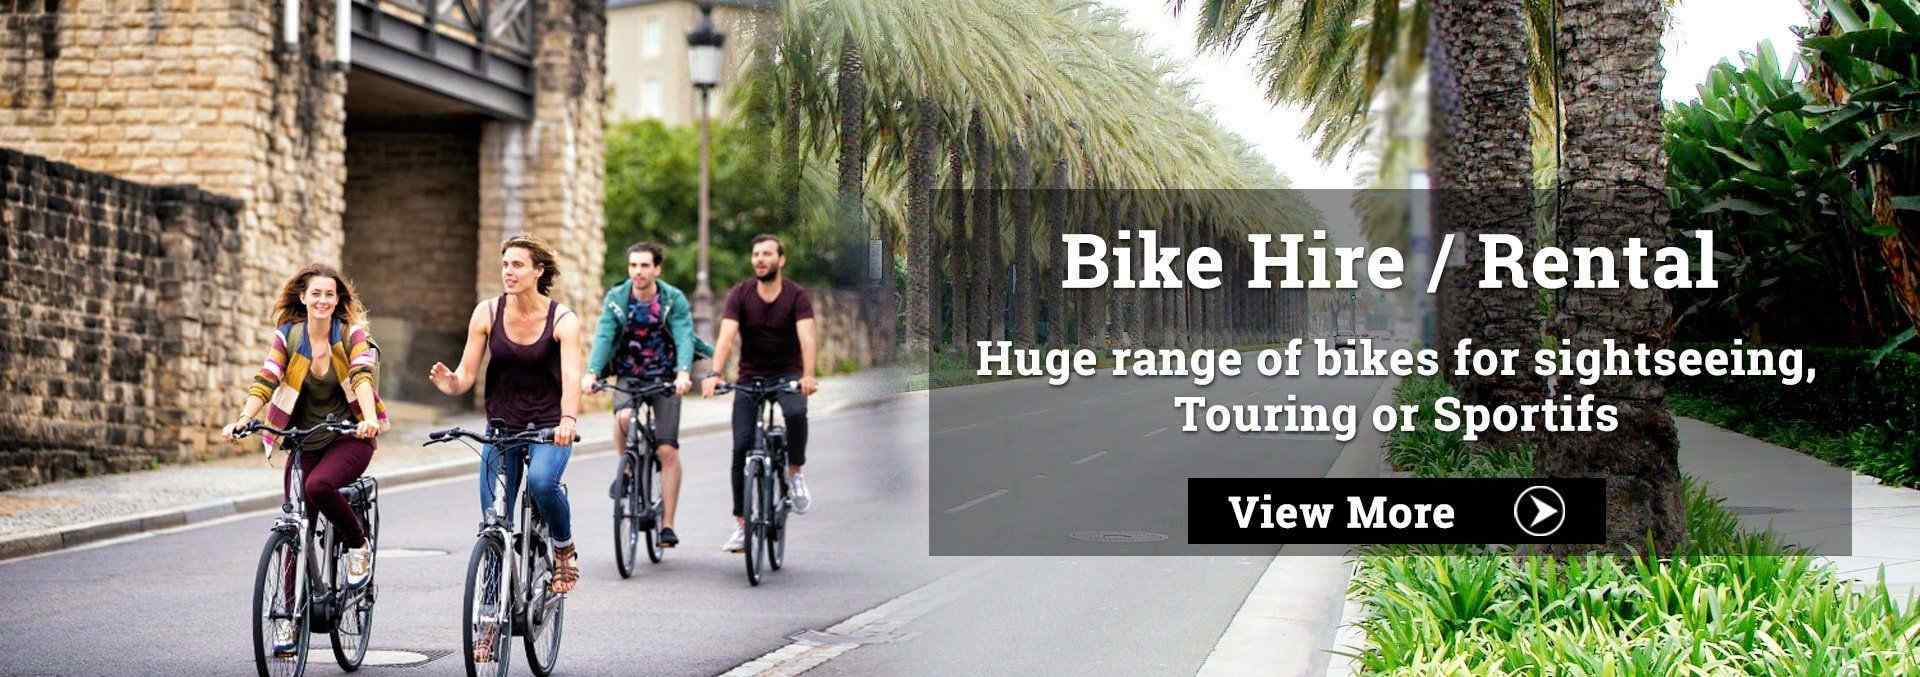 bike hire rental